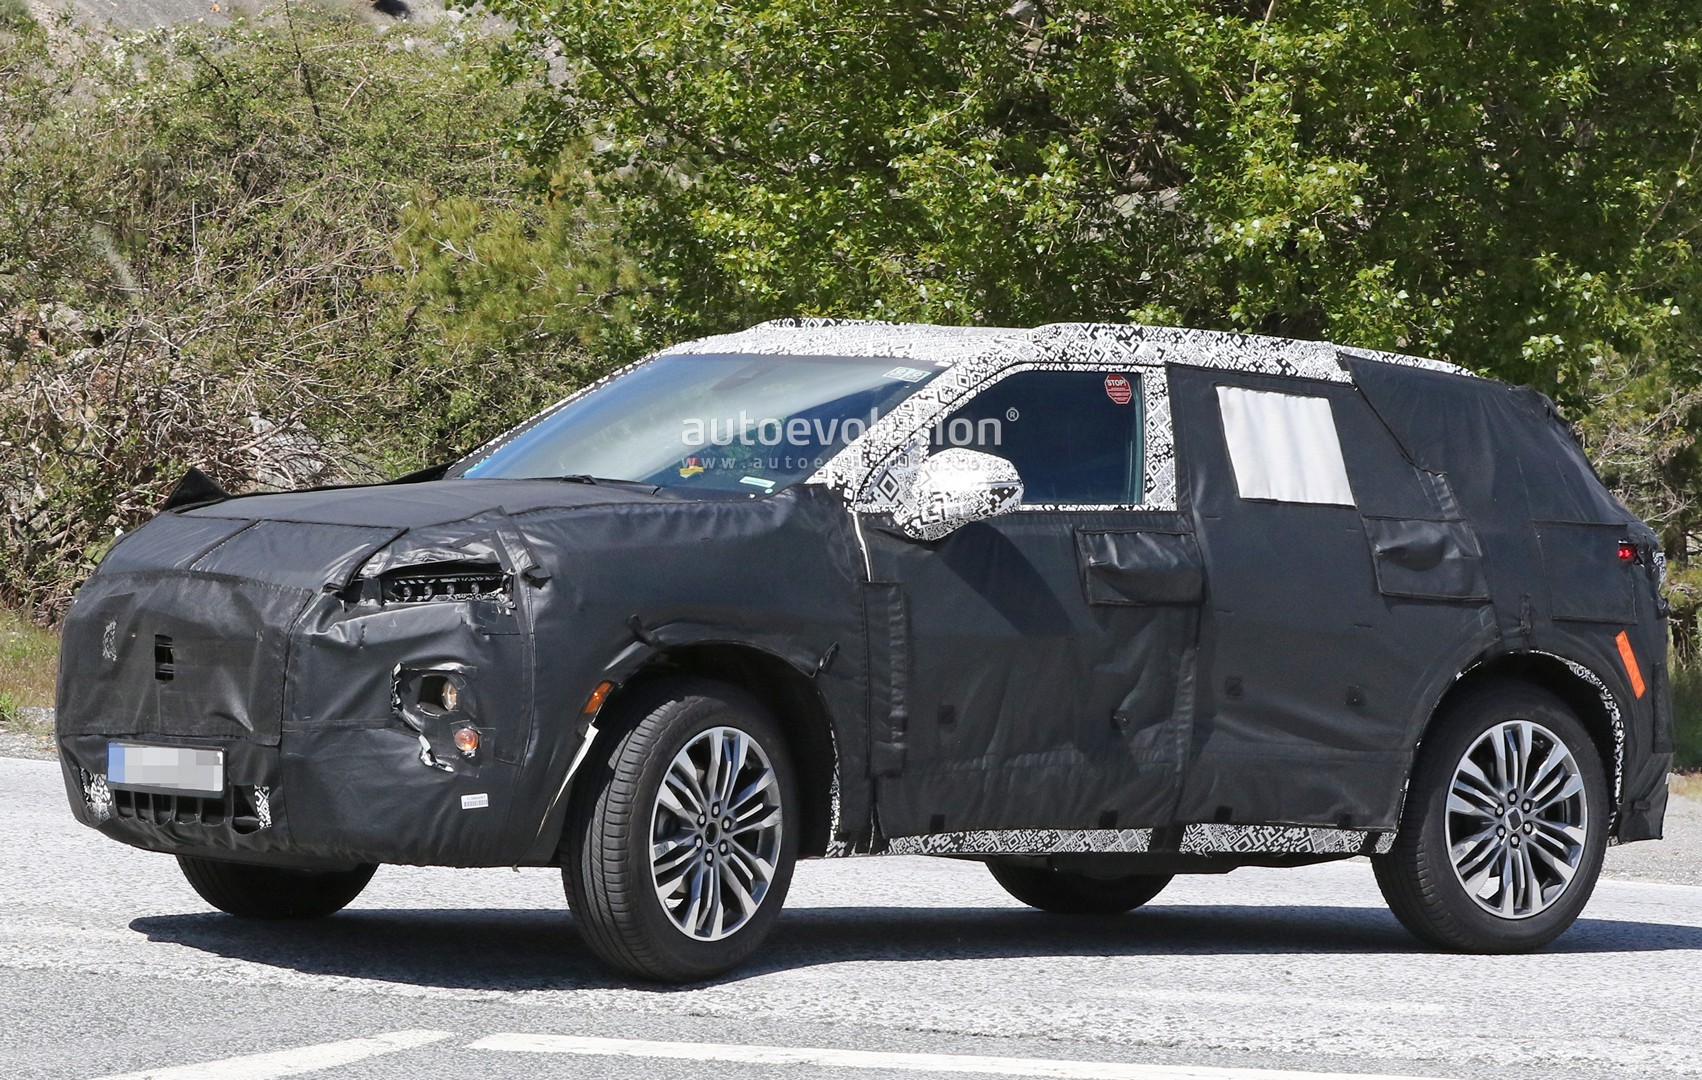 2019 Chevrolet Blazer Teaser is Not Your Usual Pun-licious ...